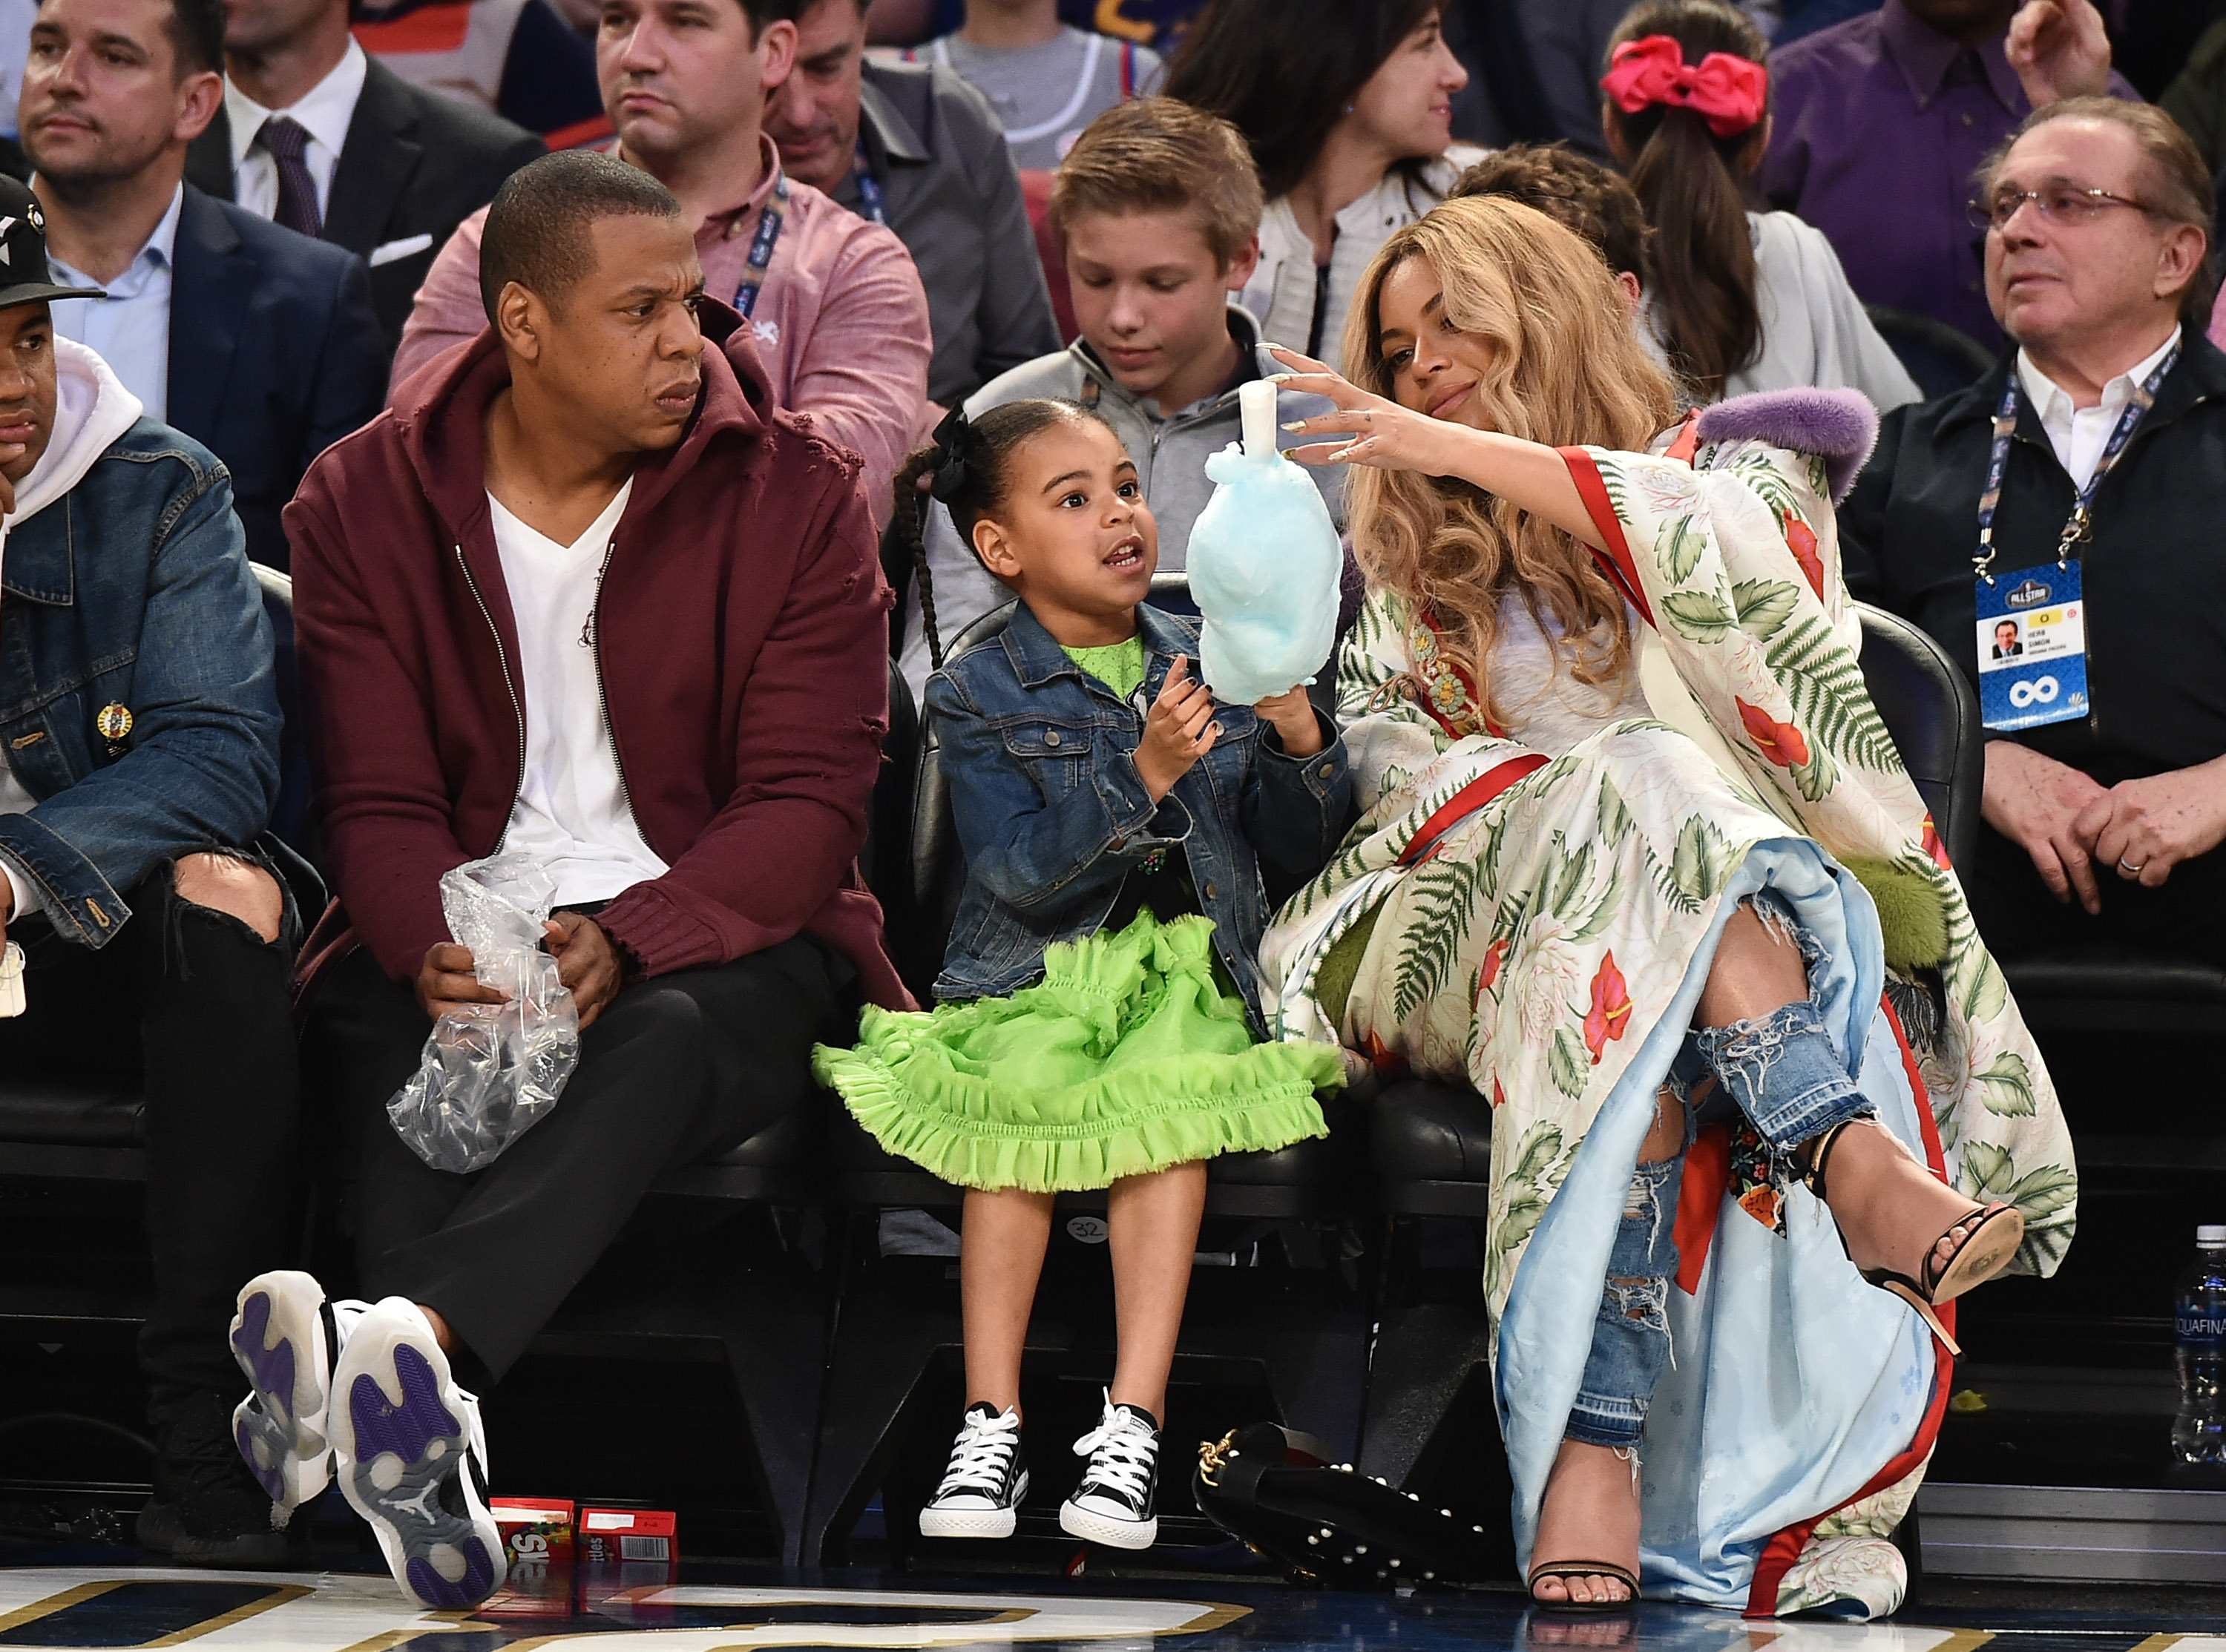 ba30e5410413f7 Beyoncé had a total blast sitting courtside with Blue Ivy at the NBA ...